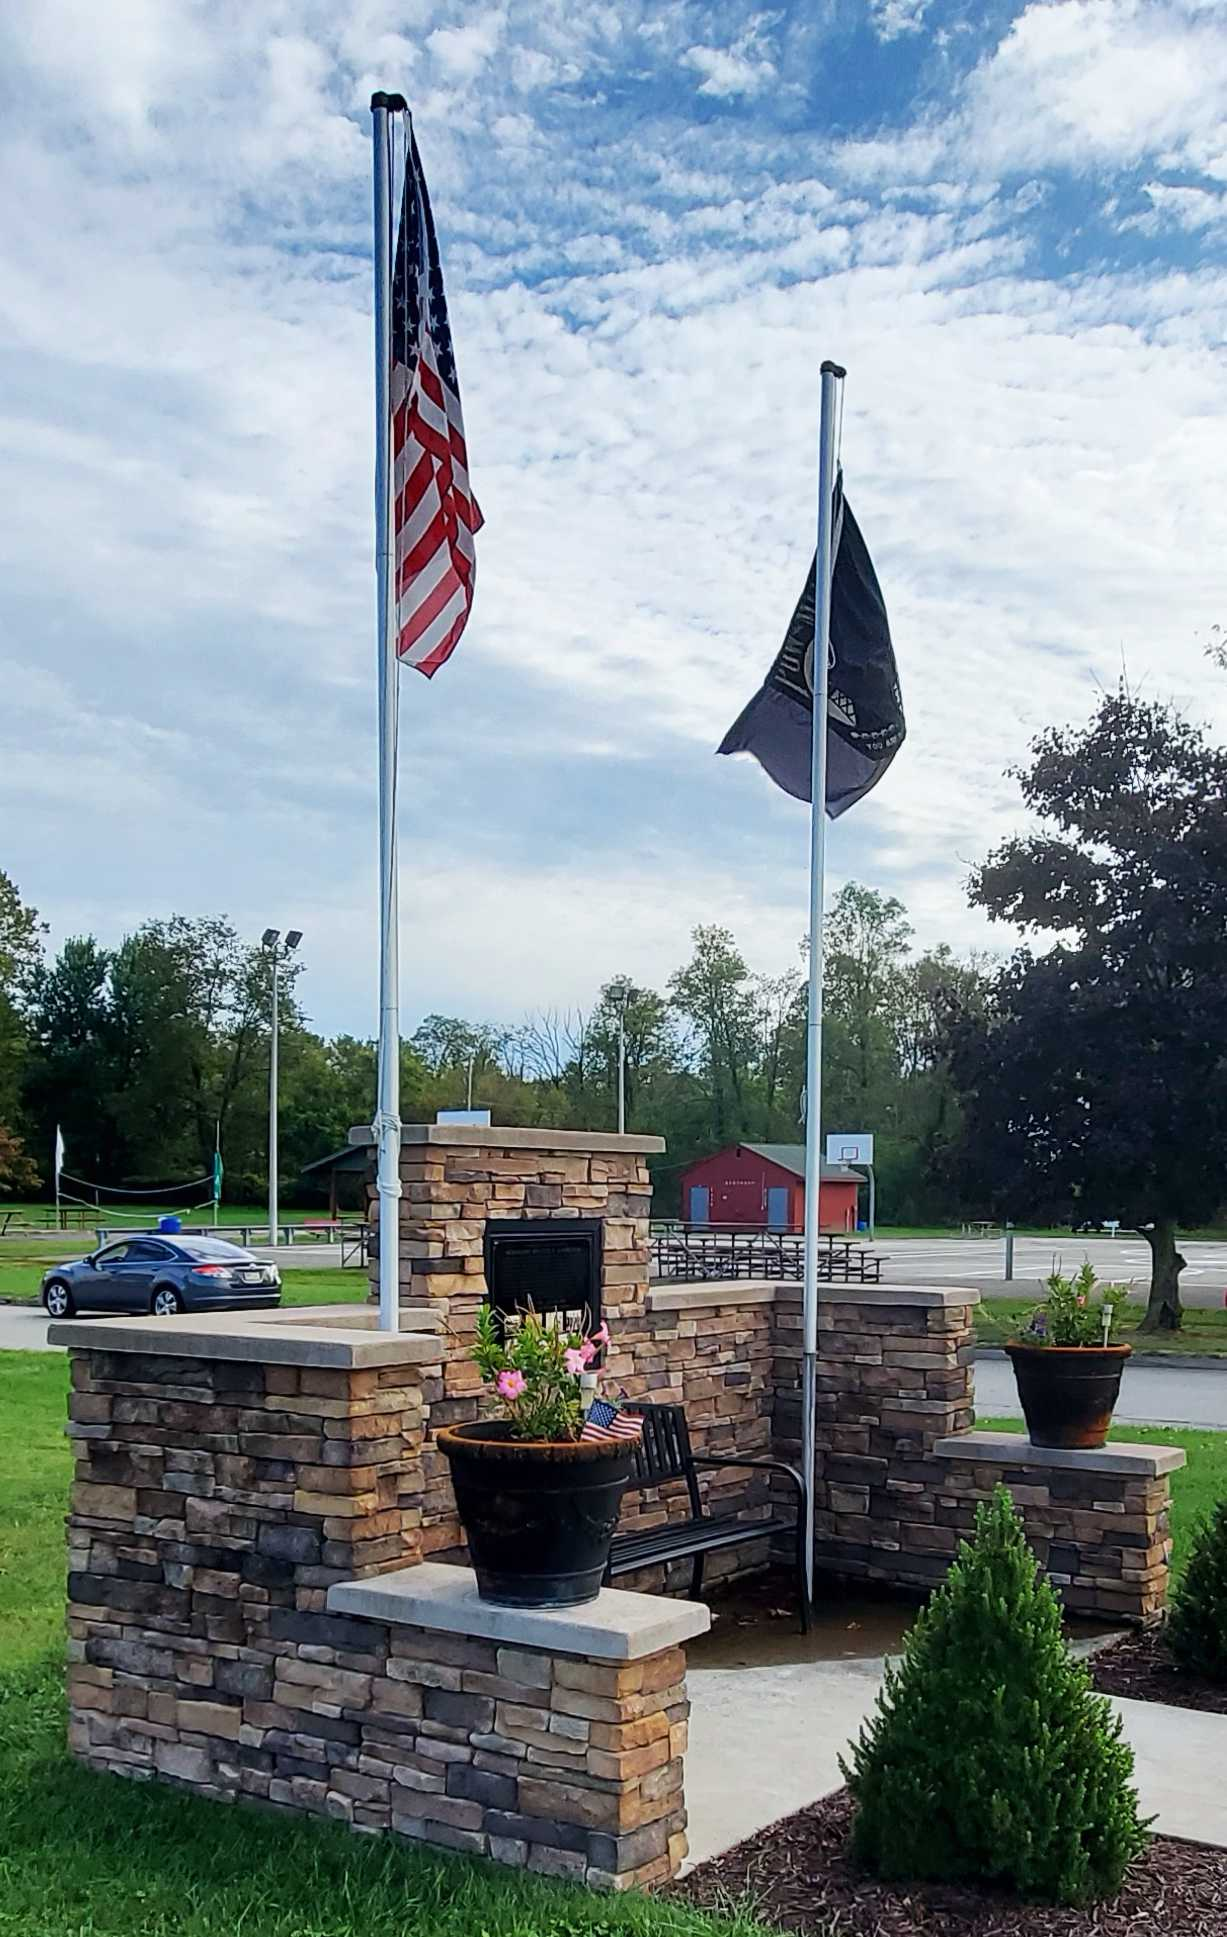 Sergeant Walter E. Kasievich Memorial at Karnuts Auto Center